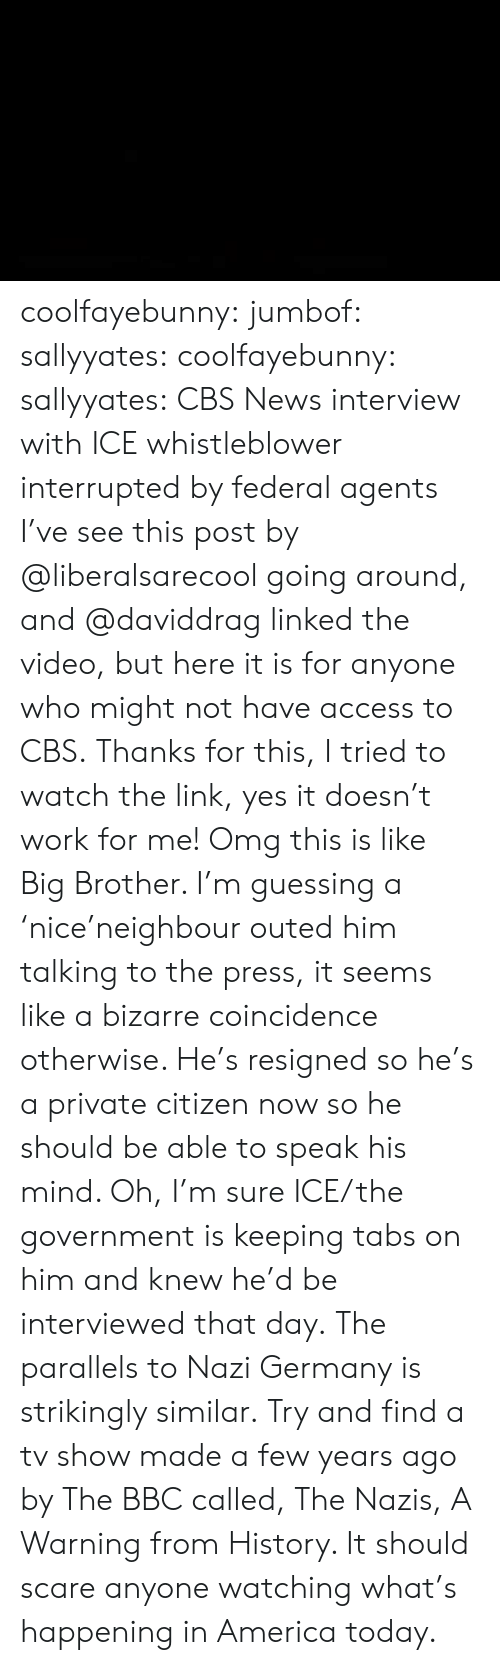 whistleblower: coolfayebunny: jumbof:   sallyyates:   coolfayebunny:  sallyyates:   CBS News interview with ICE whistleblower interrupted by federal agents I've see this post by @liberalsarecool going around, and @daviddrag linked the video, but here it is for anyone who might not have access to CBS.   Thanks for this, I tried to watch the link, yes it doesn't work for me!  Omg this is like Big Brother. I'm guessing a 'nice'neighbour outed him talking to the press, it seems like a bizarre coincidence otherwise.  He's resigned so he's a private citizen now so he should be able to speak his mind.   Oh, I'm sure ICE/the government is keeping tabs on him and knew he'd be interviewed that day.   The parallels to Nazi Germany is strikingly similar.   Try and find a tv show made a few years ago by The BBC called, The Nazis, A Warning from History. It should scare anyone watching what's happening in America today.